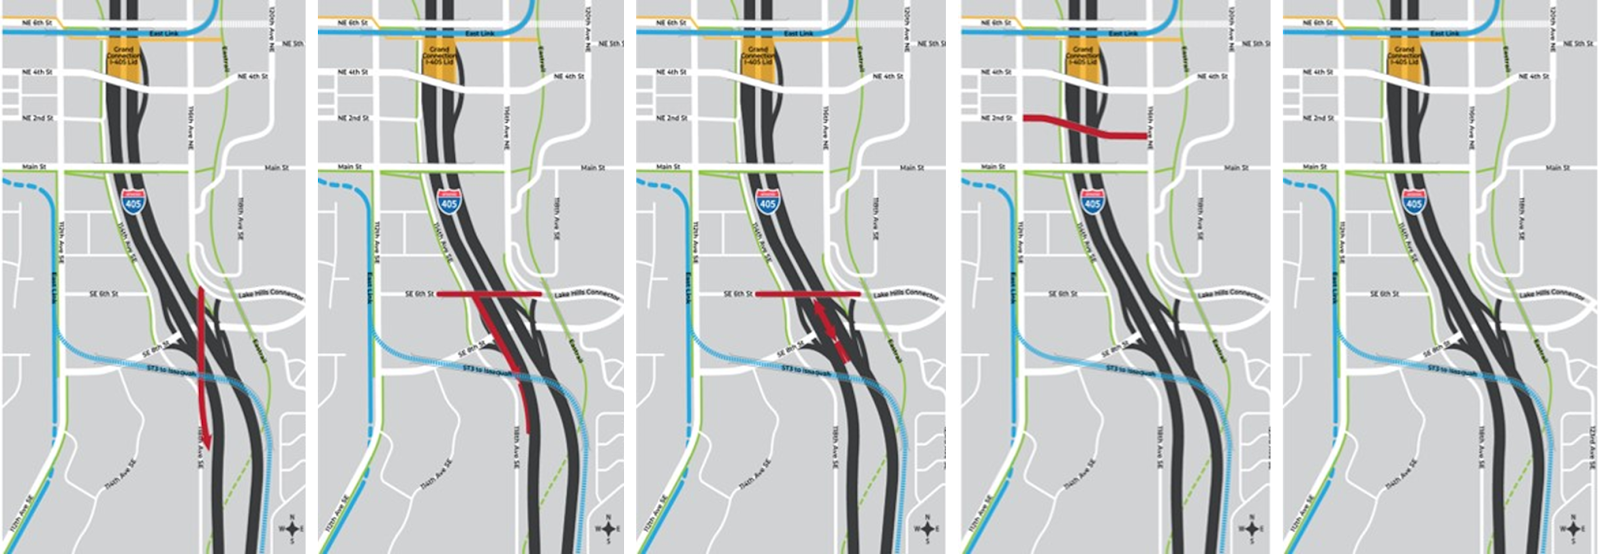 Five alternatives, including a no-build option, for the South Downtown interchange. Note that all, except the no-build option, would interfere with Sound Transit's future Issaquah light rail.